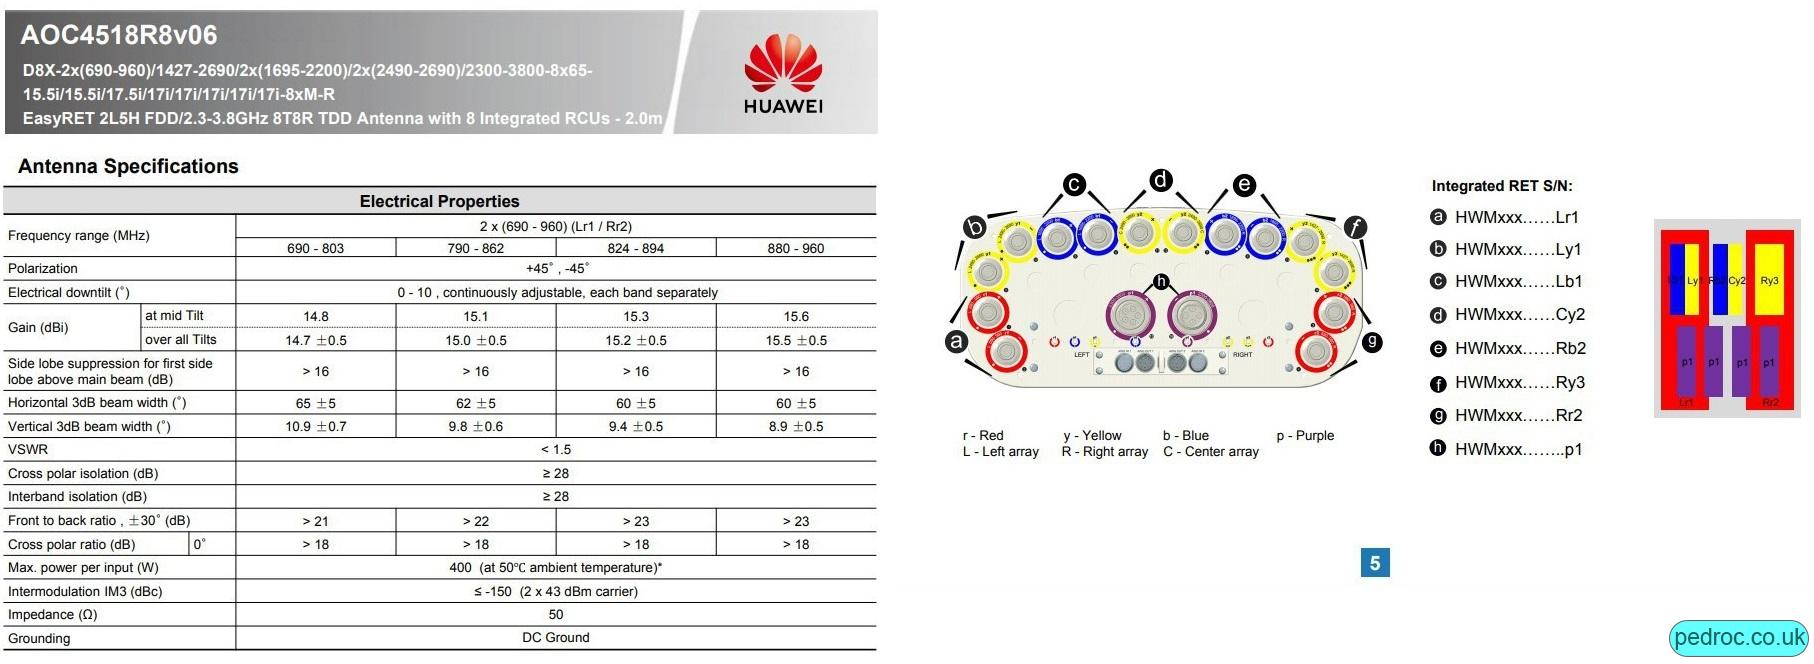 Specifications for the Huawei AOC 4518R8v06 antenna used for EE 8T8R 5G.